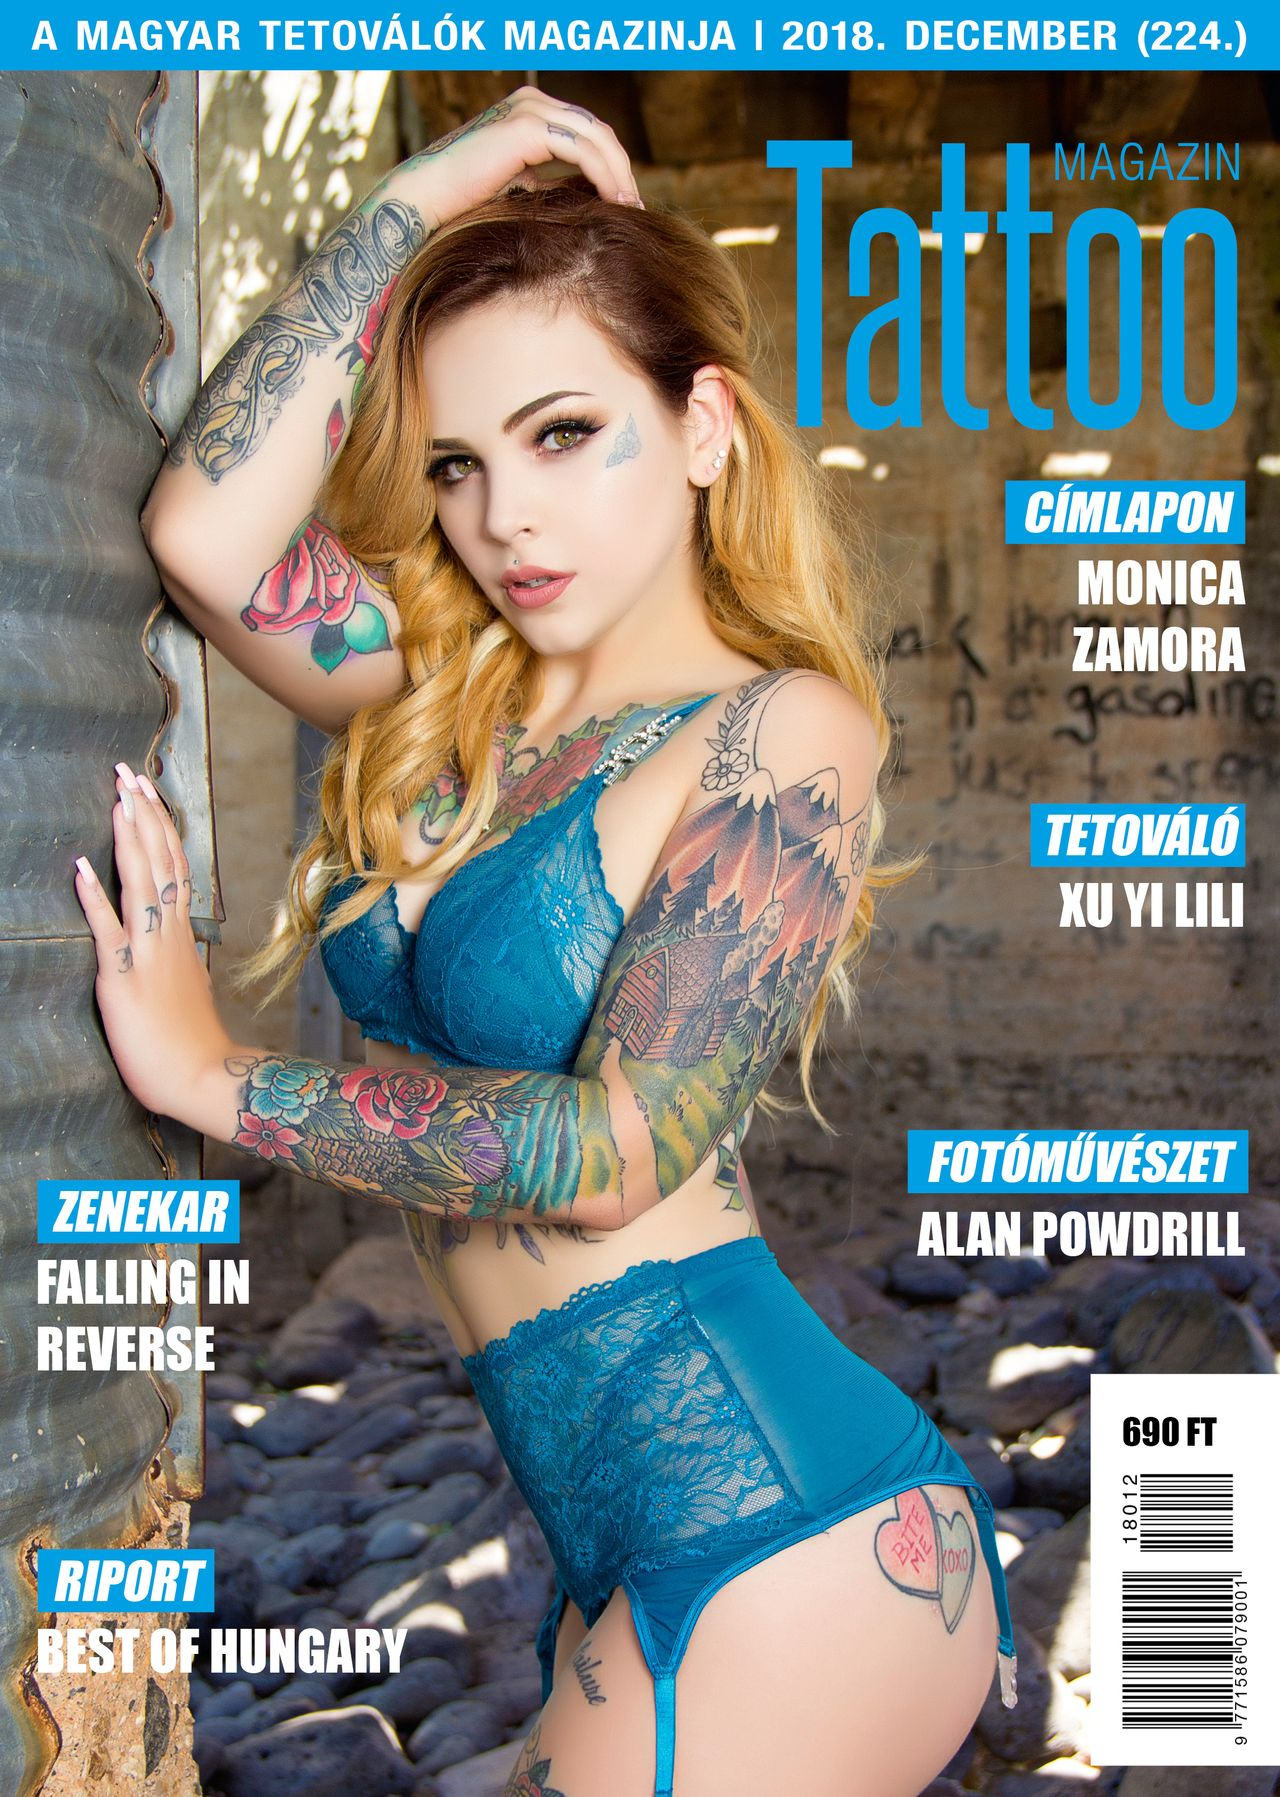 Tattoo Magazin 2018 December 224